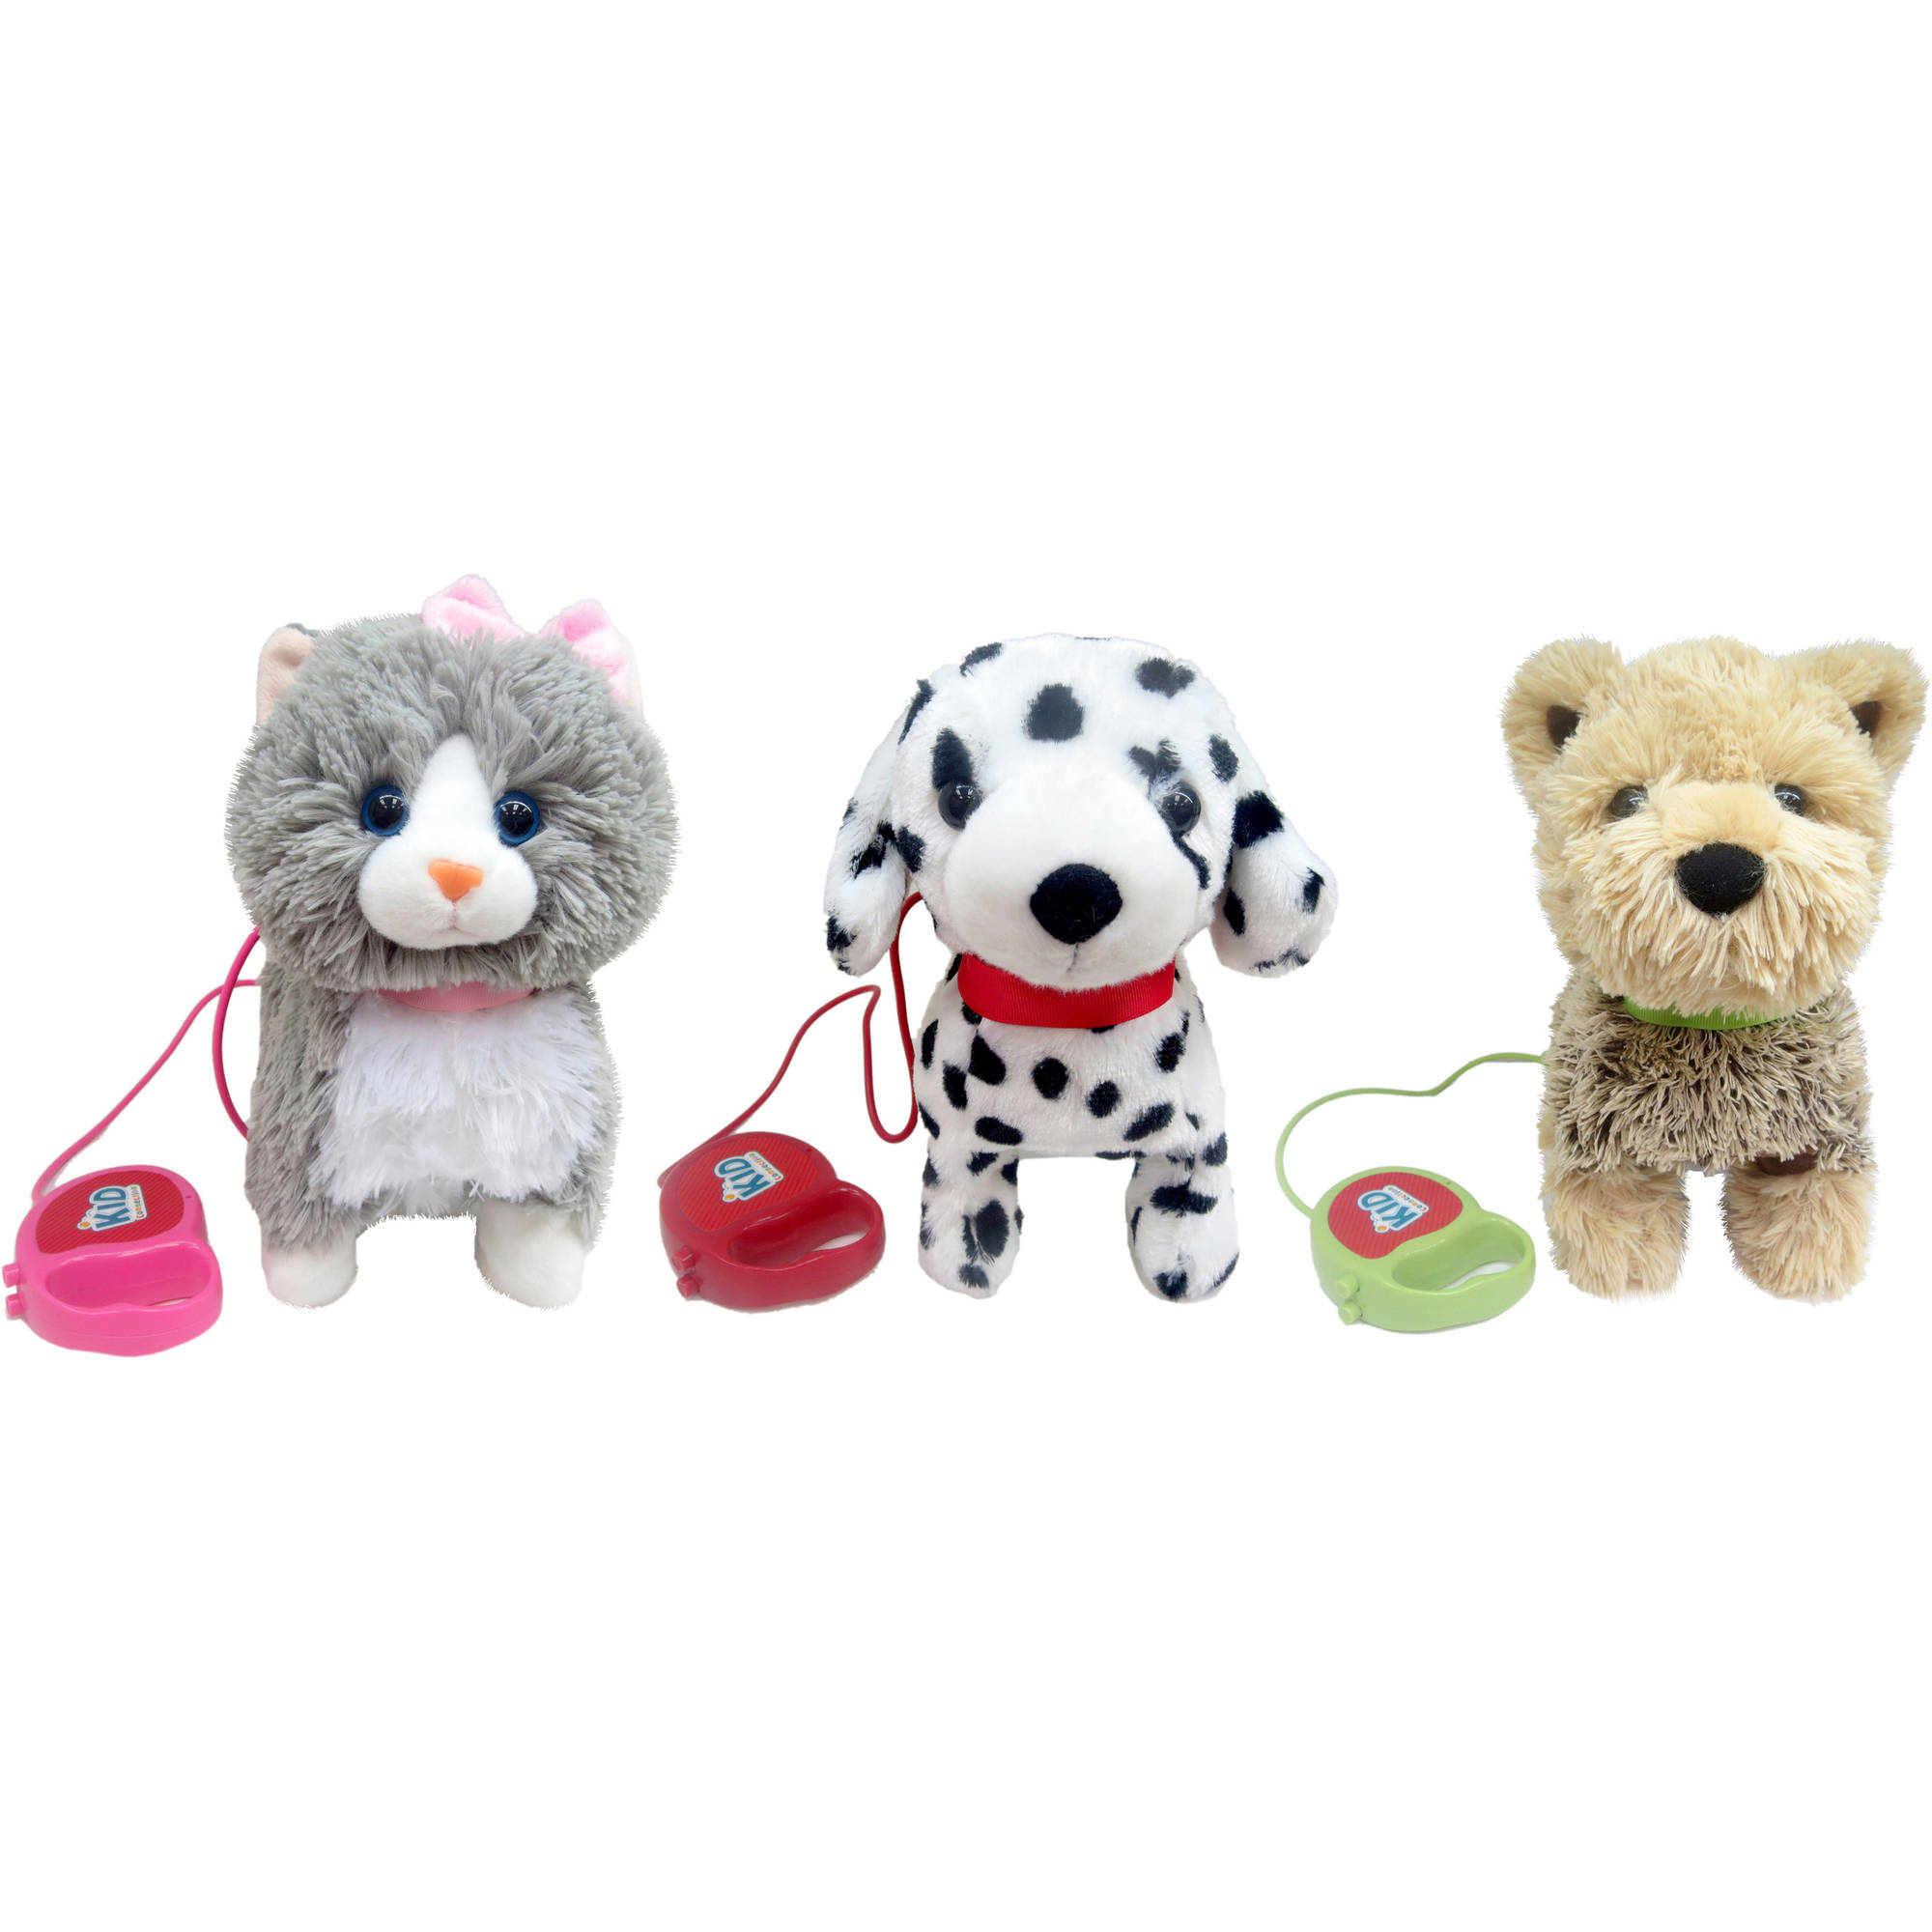 Sound and Lights Walking Pets Collection Walmart